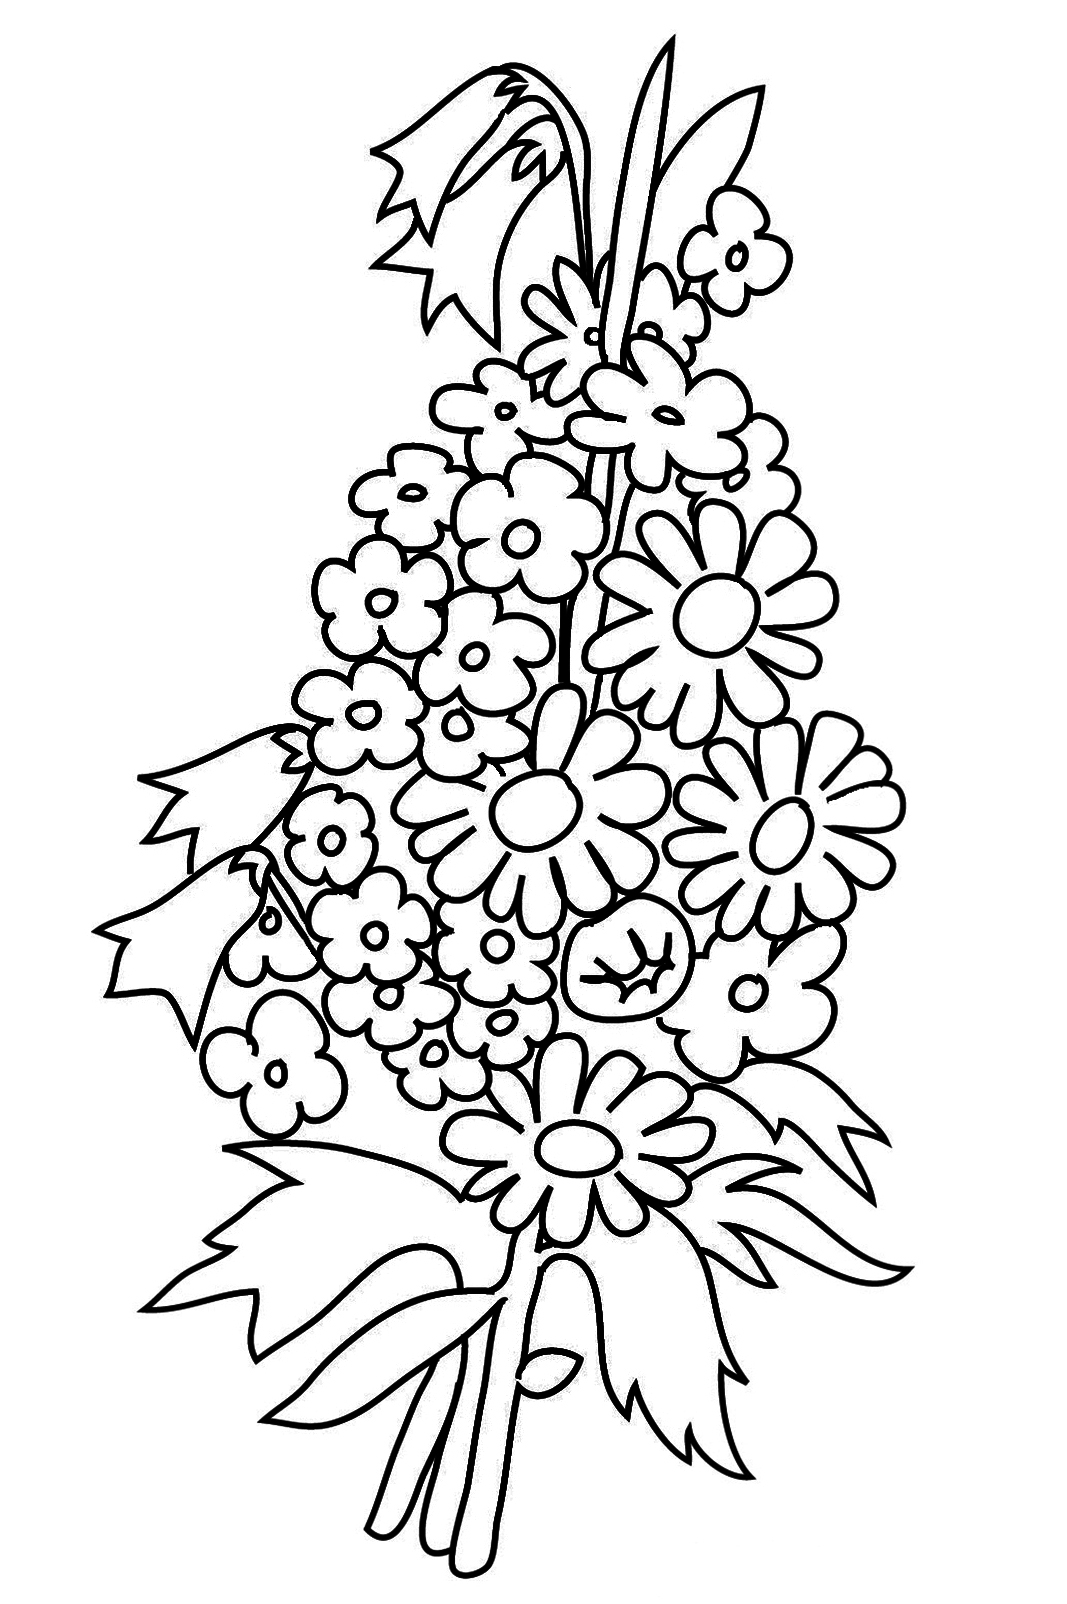 1067x1604 New Printable Flower Bouquet Coloring Pages Gallery Printable